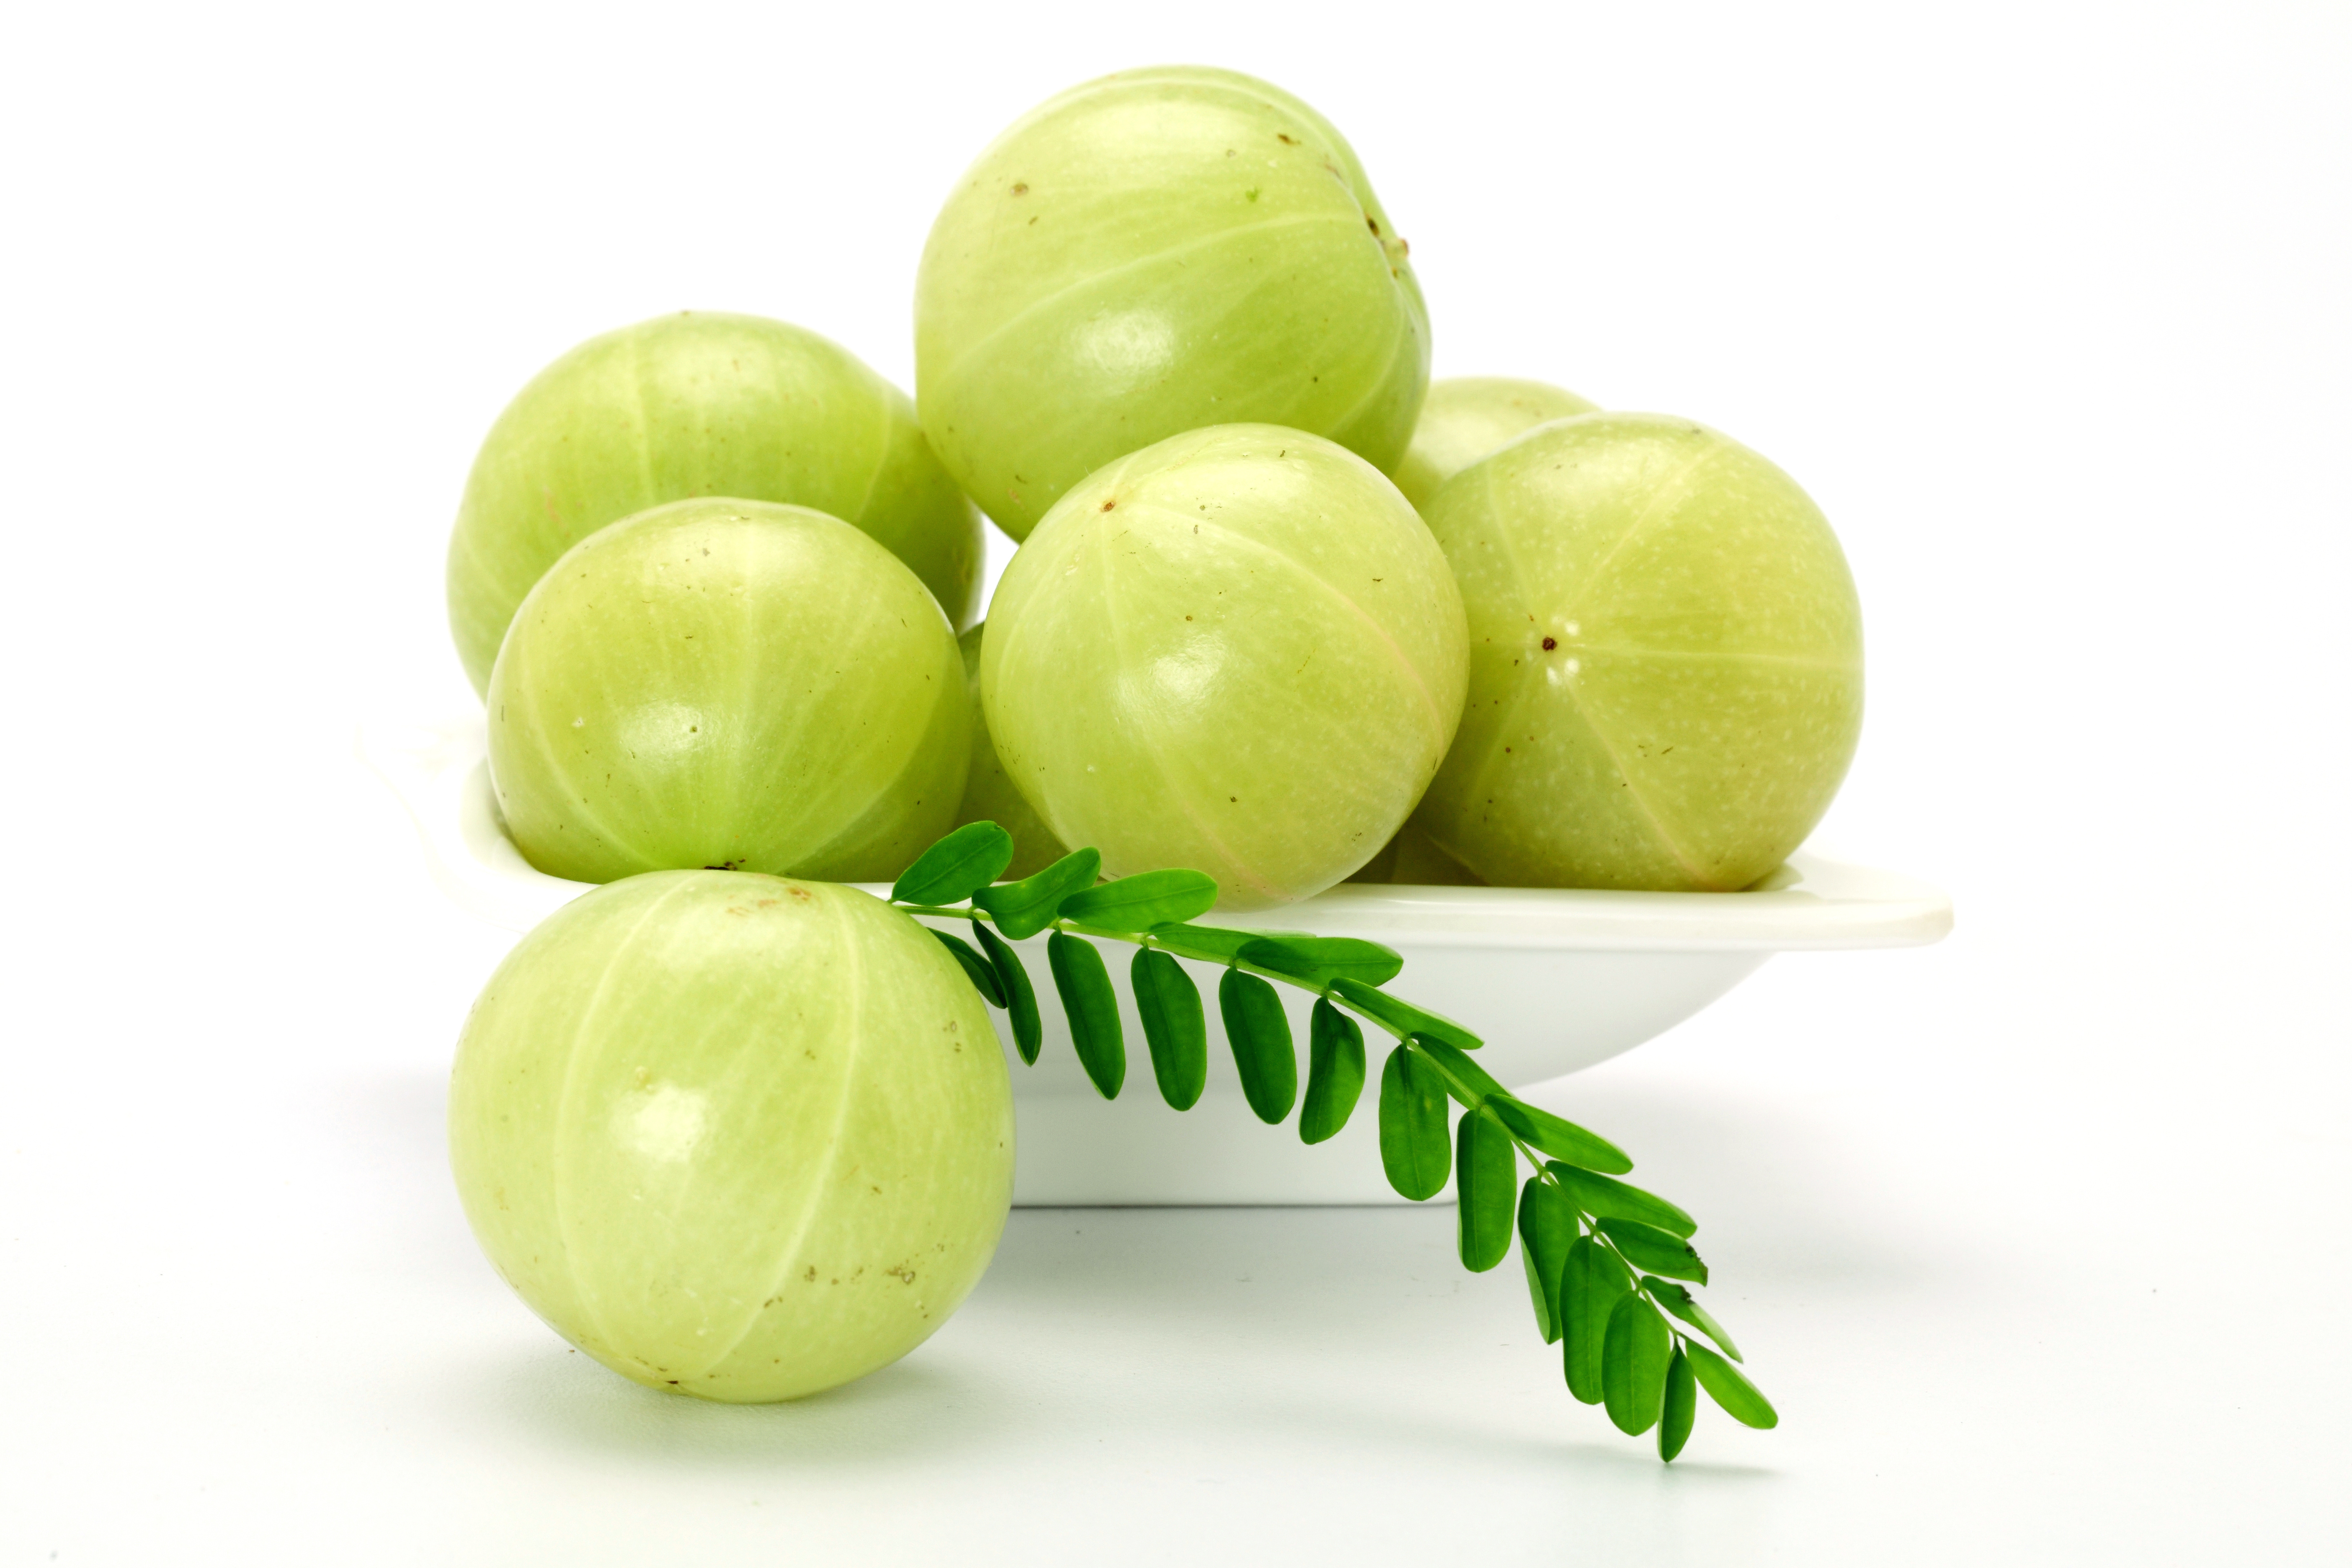 Amla (Indian gooseberry) is a tangy seasonal fruit that is high in vitamin C. Photo: Swapan / Dollar Photo Club